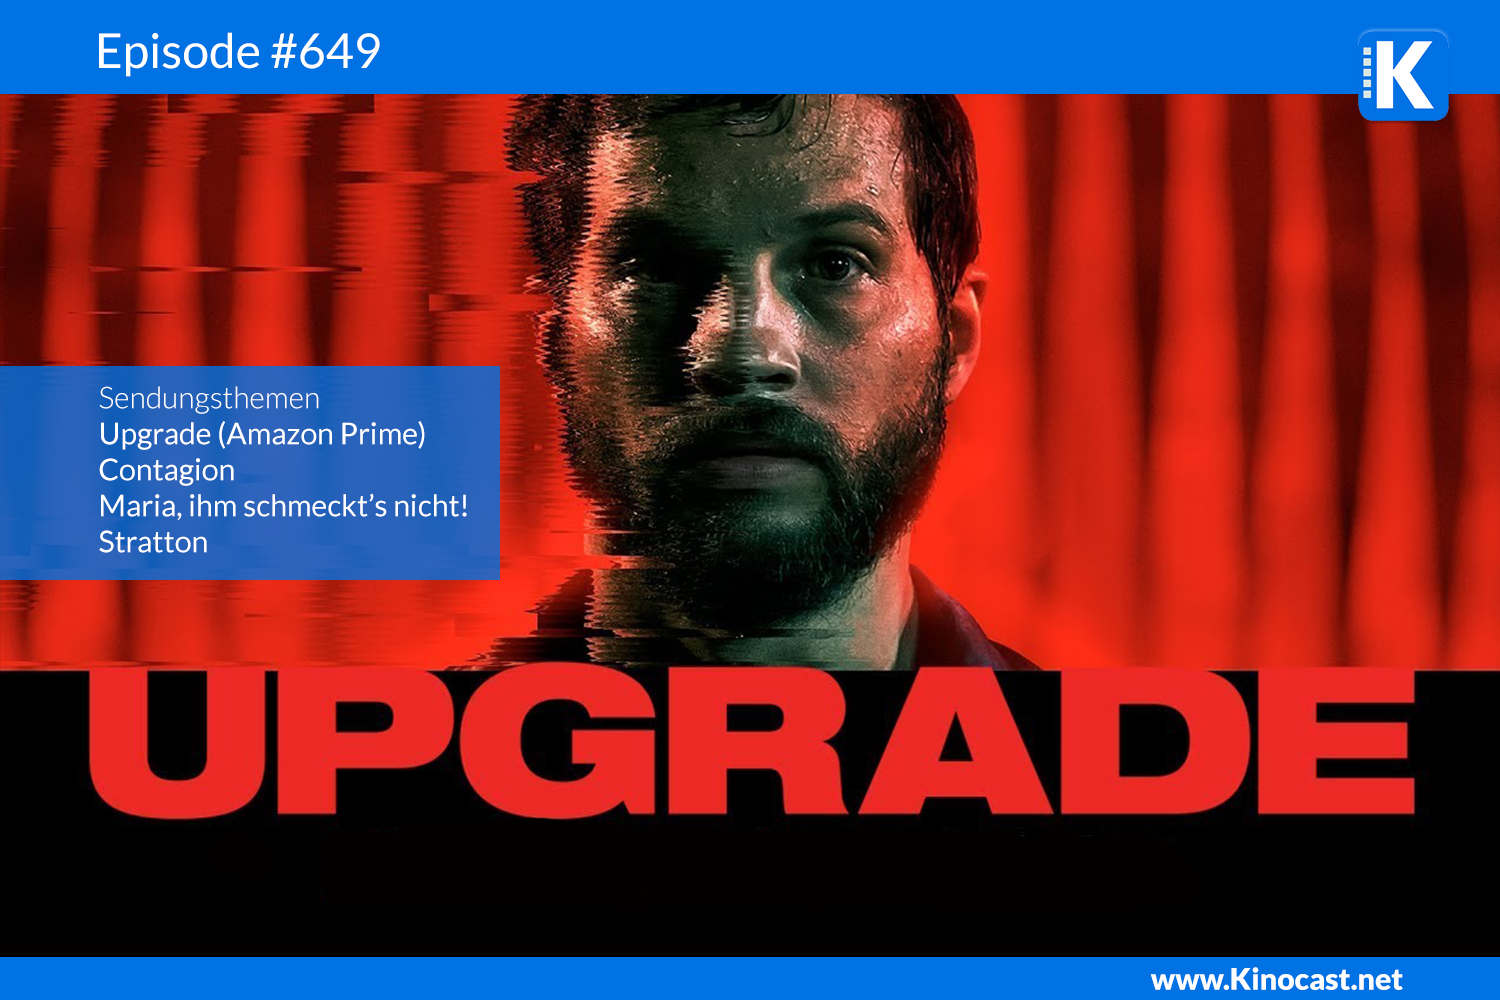 Upgrade Contagion Stratton Maria ihm schmeckts nicht Run Download Kritik Film german deutsch Podcast